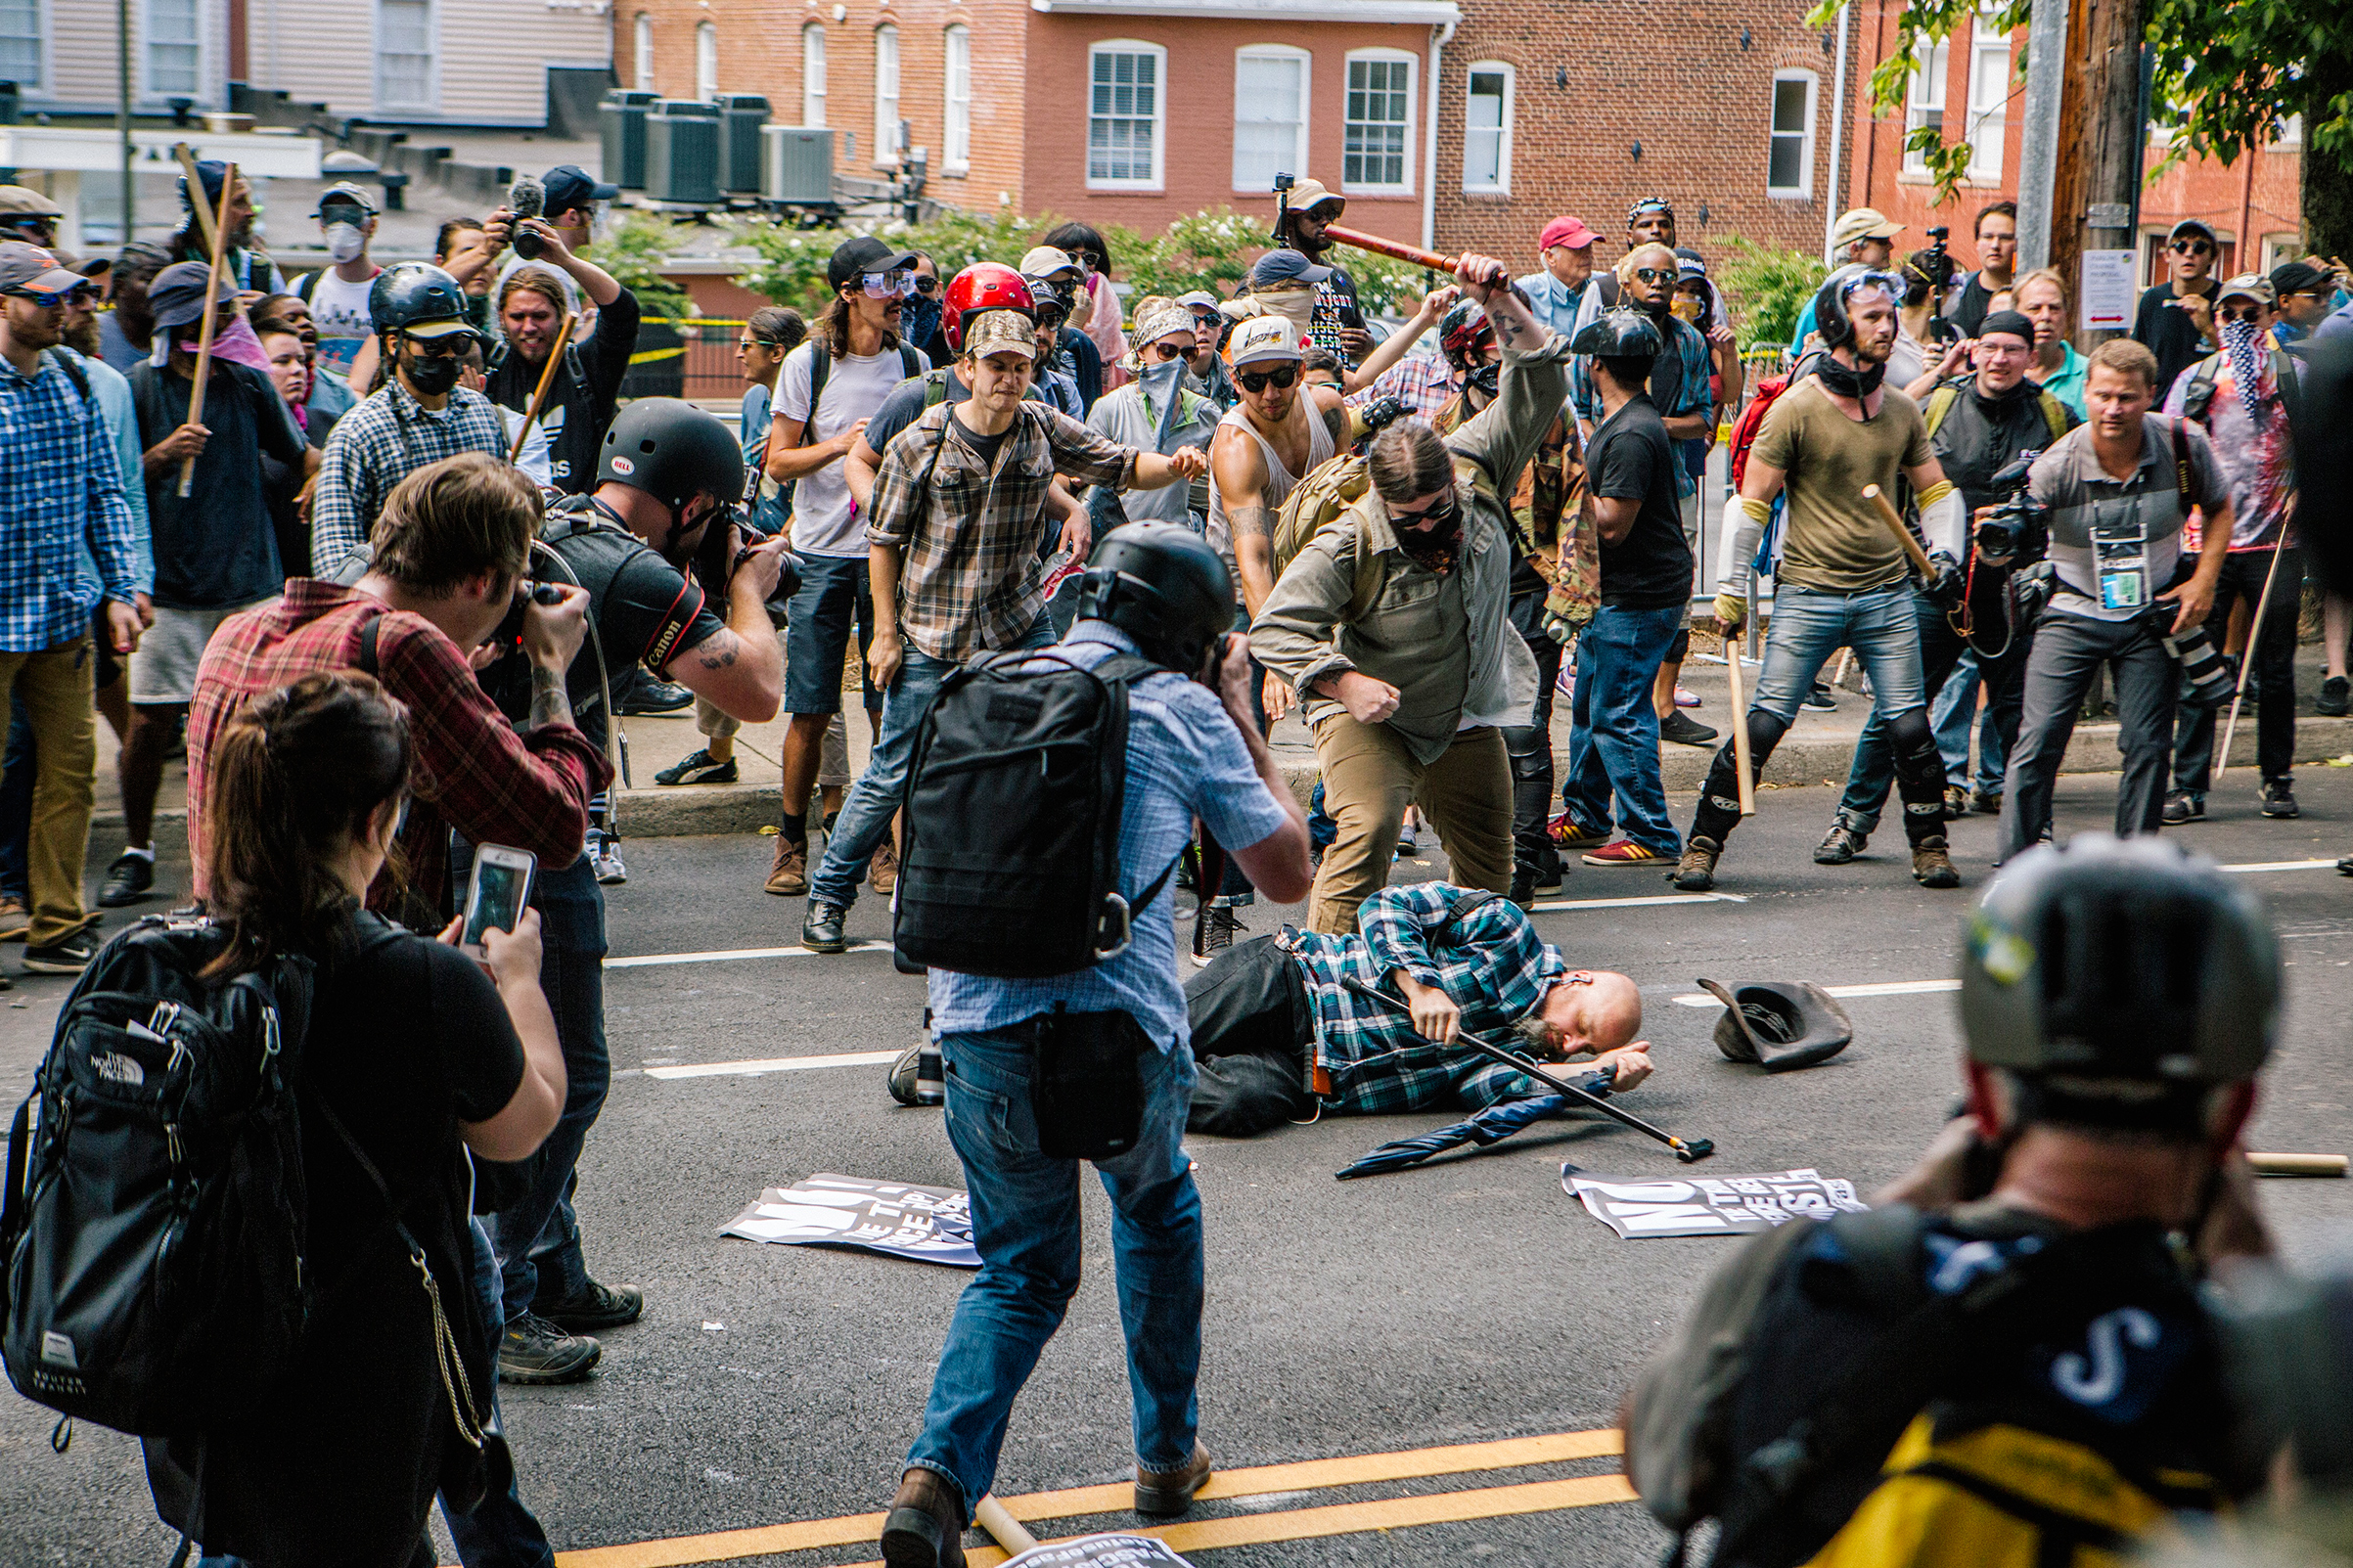 As police tried to clear the streets on Aug. 12, counterprotesters beat protesters in Charlottesville